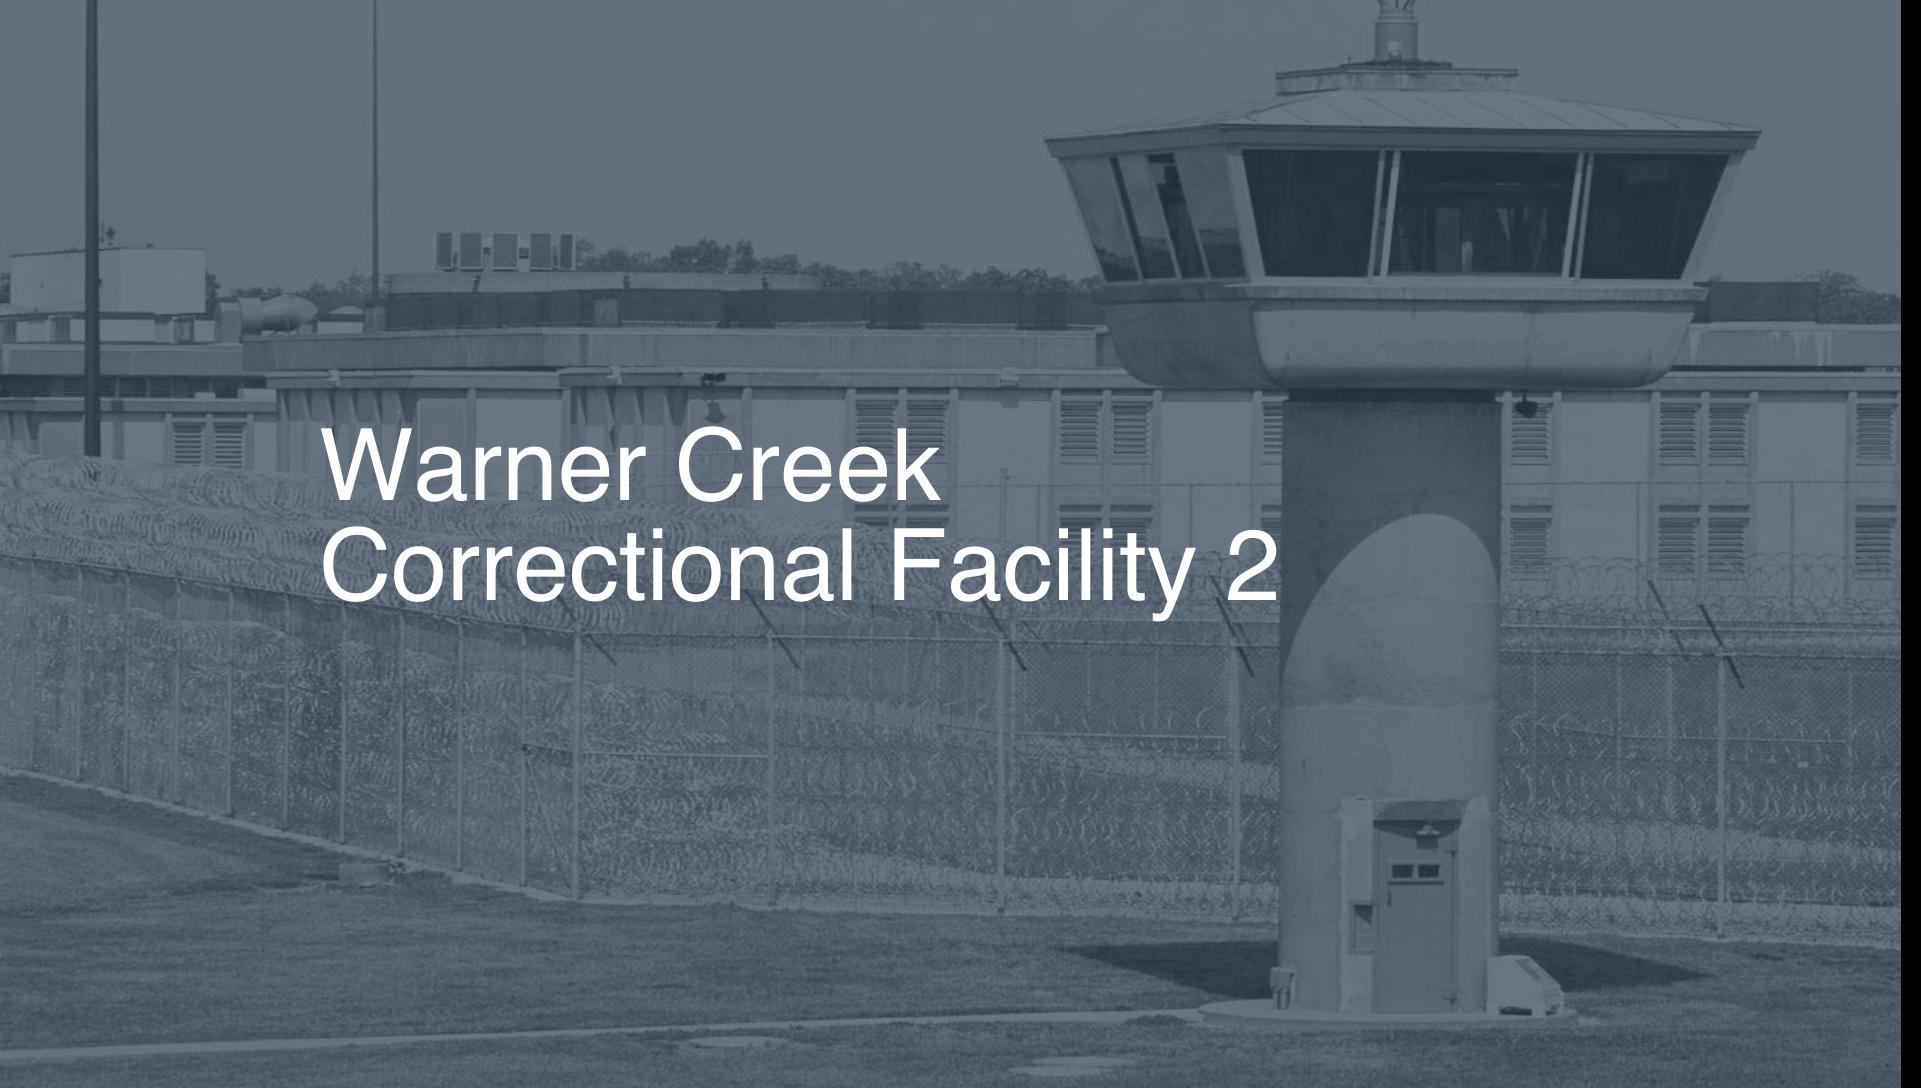 Warner Creek Correctional Facility   Pigeonly - Inmate